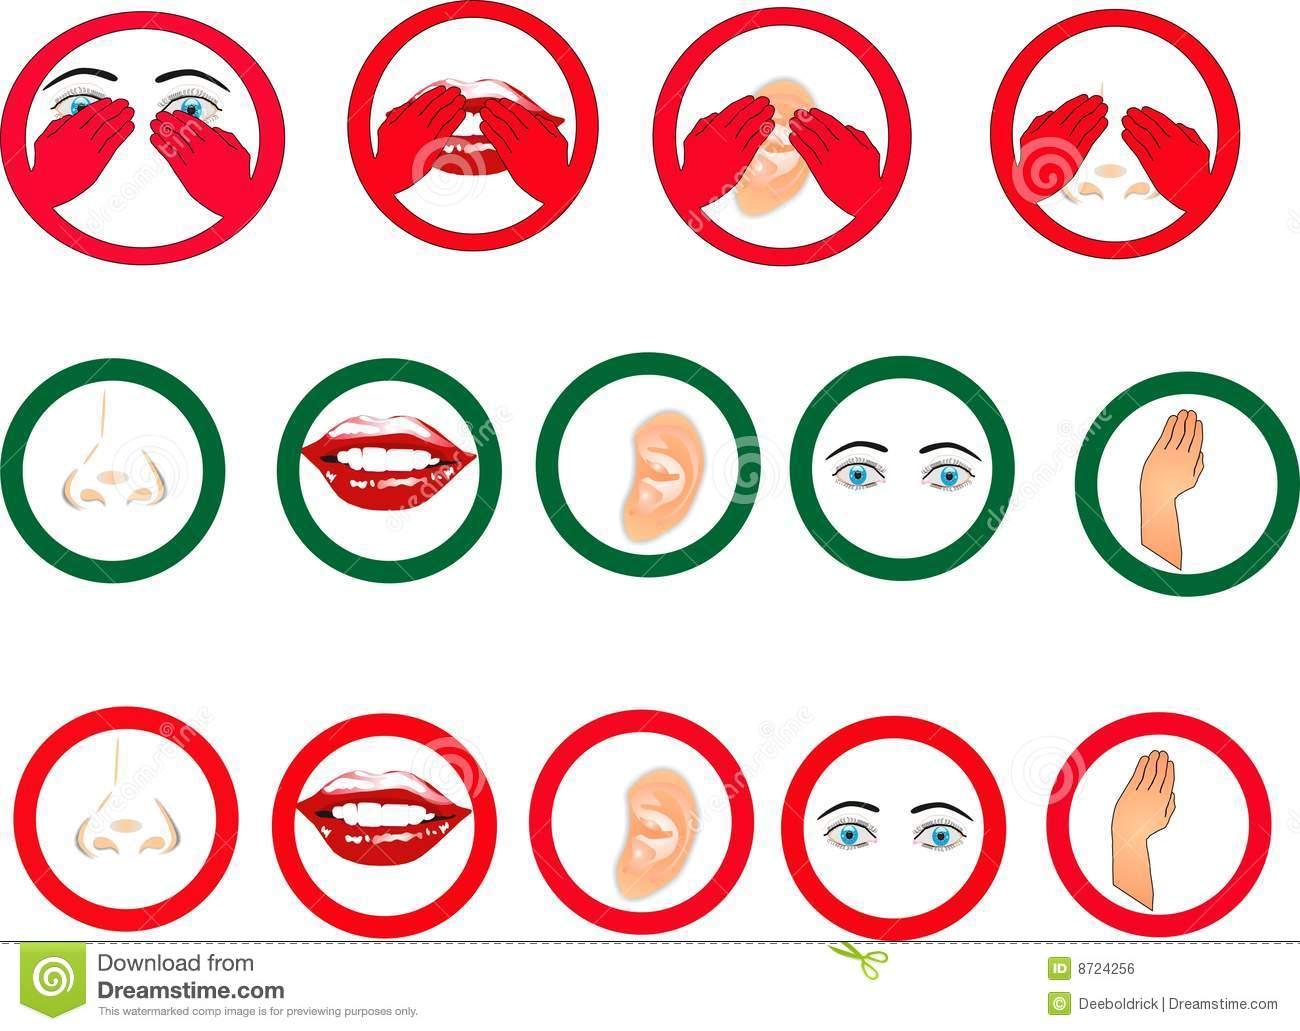 Qtborm Bc as well Five Senses Line Icons Human Ear Eye Symbols Nose Mouth Outline Vector Signs also Pasd Ij L likewise Maxresdefault in addition X. on senses clipart